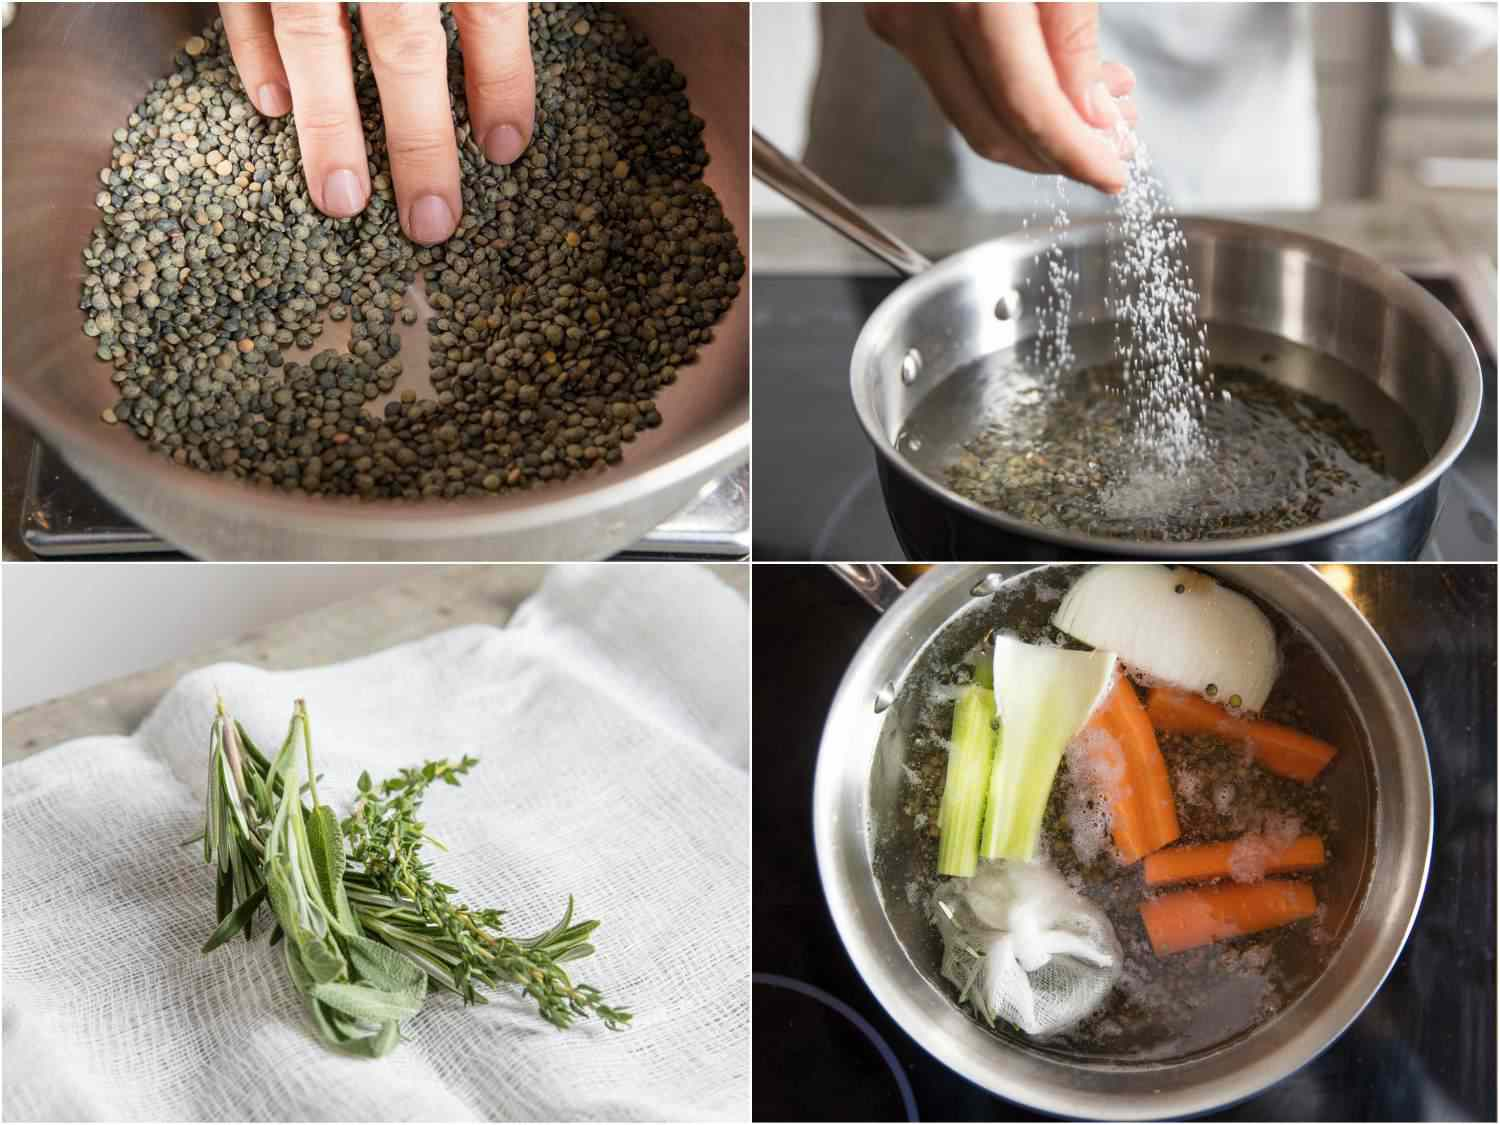 20170922-french-lentils-vicky-wasik-collage1.jpg